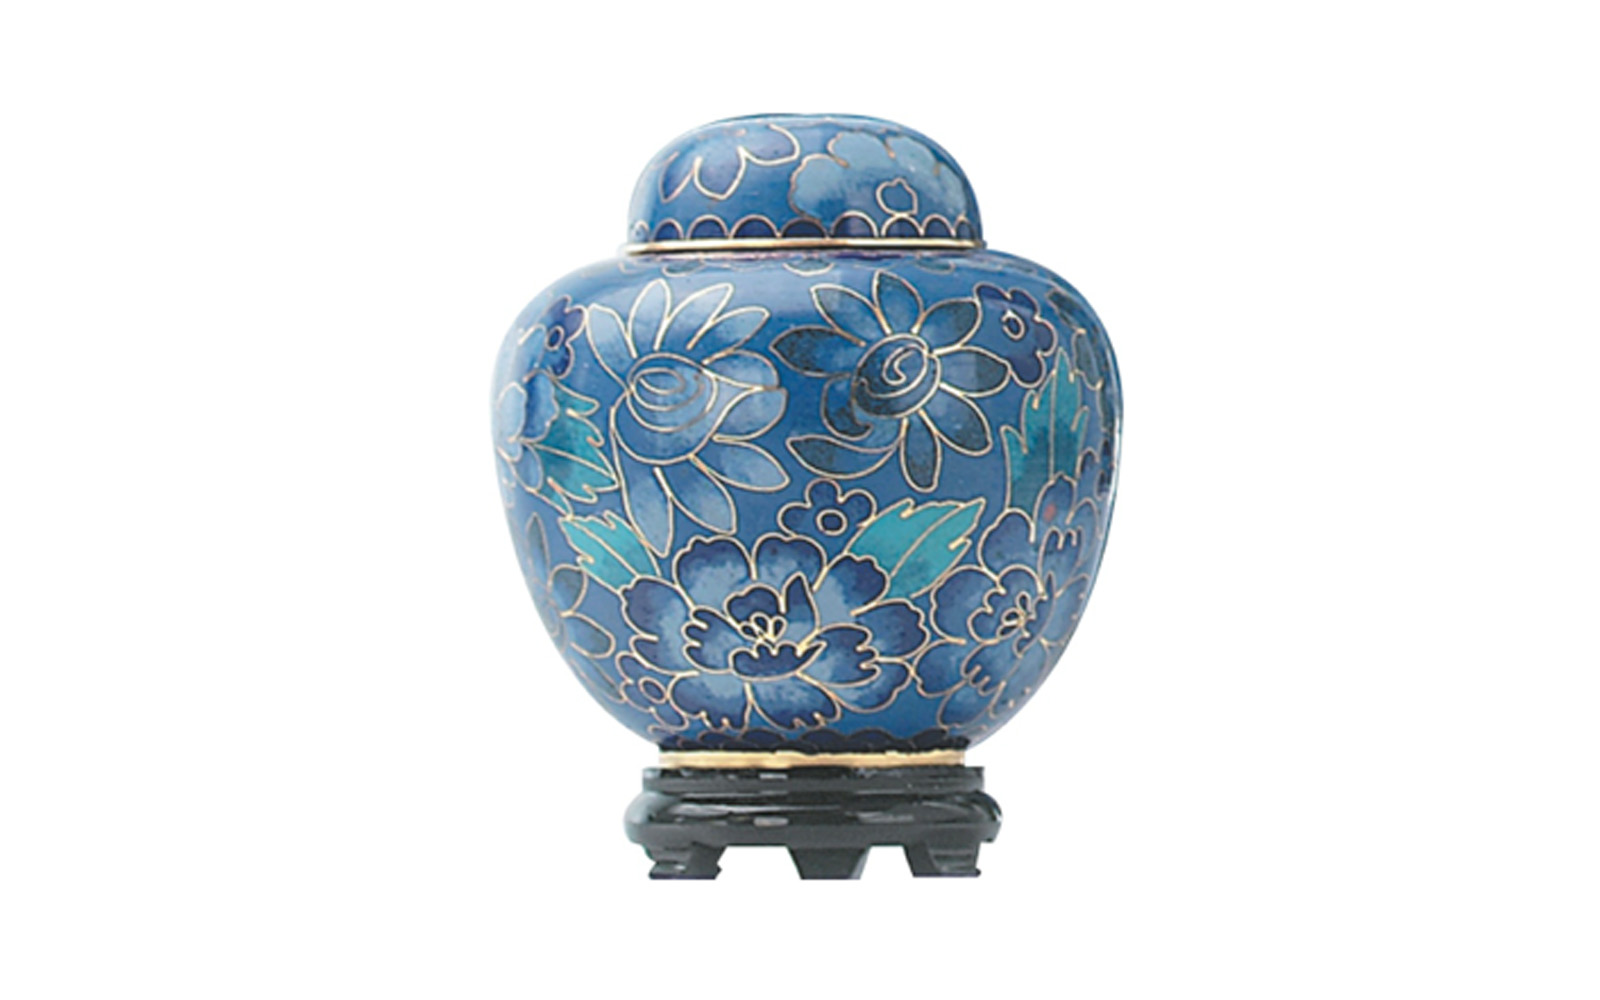 """Blue Cloisonne Keepsake     Made of Brass, this urn's outer shell is composed of intricate metal wiring filled with painted enamel. It measures 2 ¾"""" Dia. x 3 ½"""" H, Black Base 2 ¼"""" Dia. x 1"""" H, 2.5 Cu. inches, up to 2 lbs,  $68"""